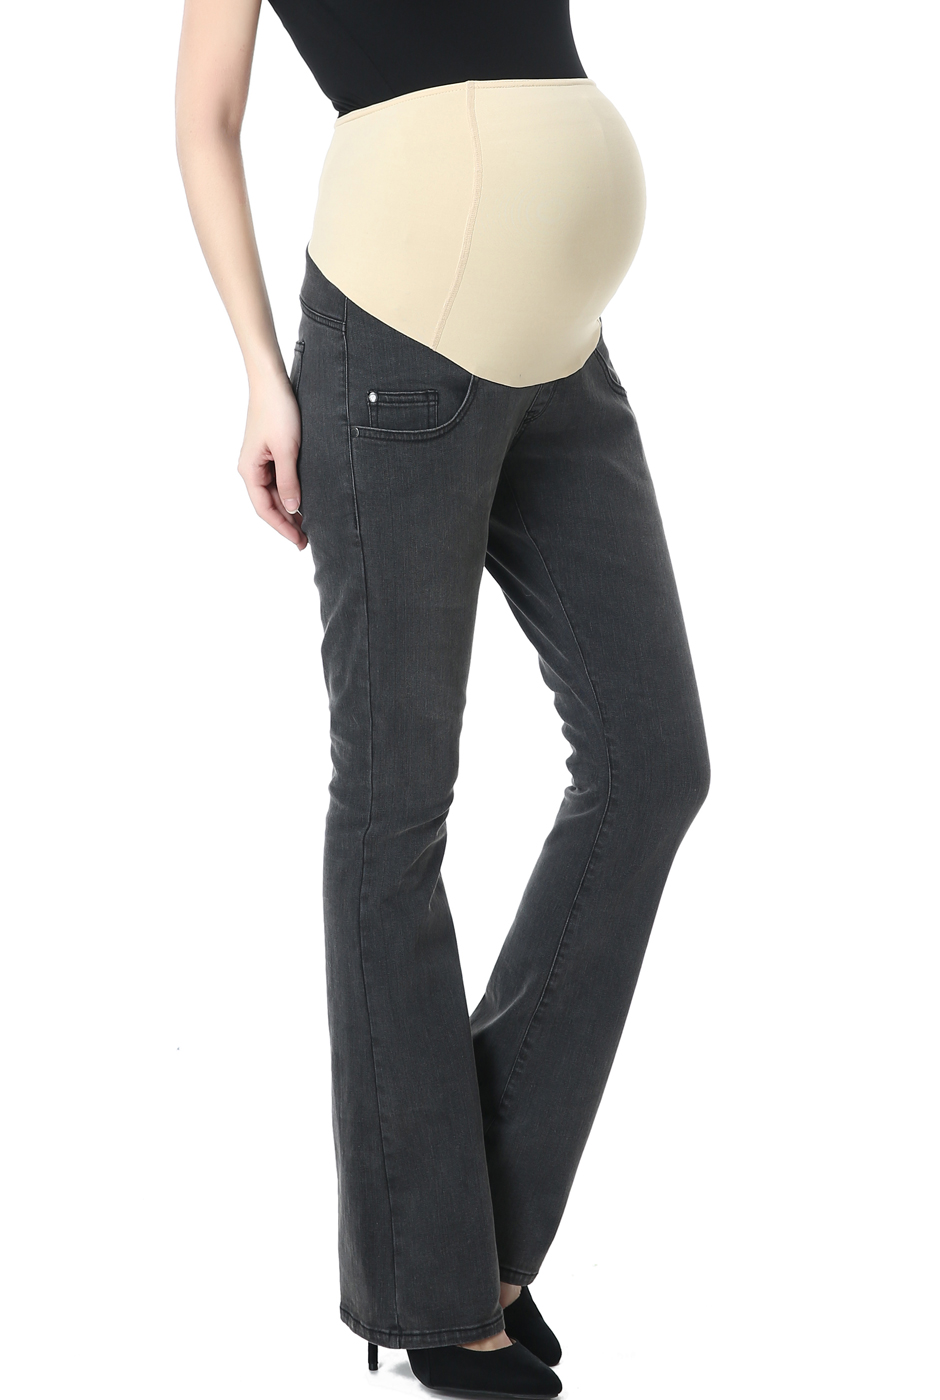 Maternity Women's Modern Boot Cut Denim Jeans - Gray 25